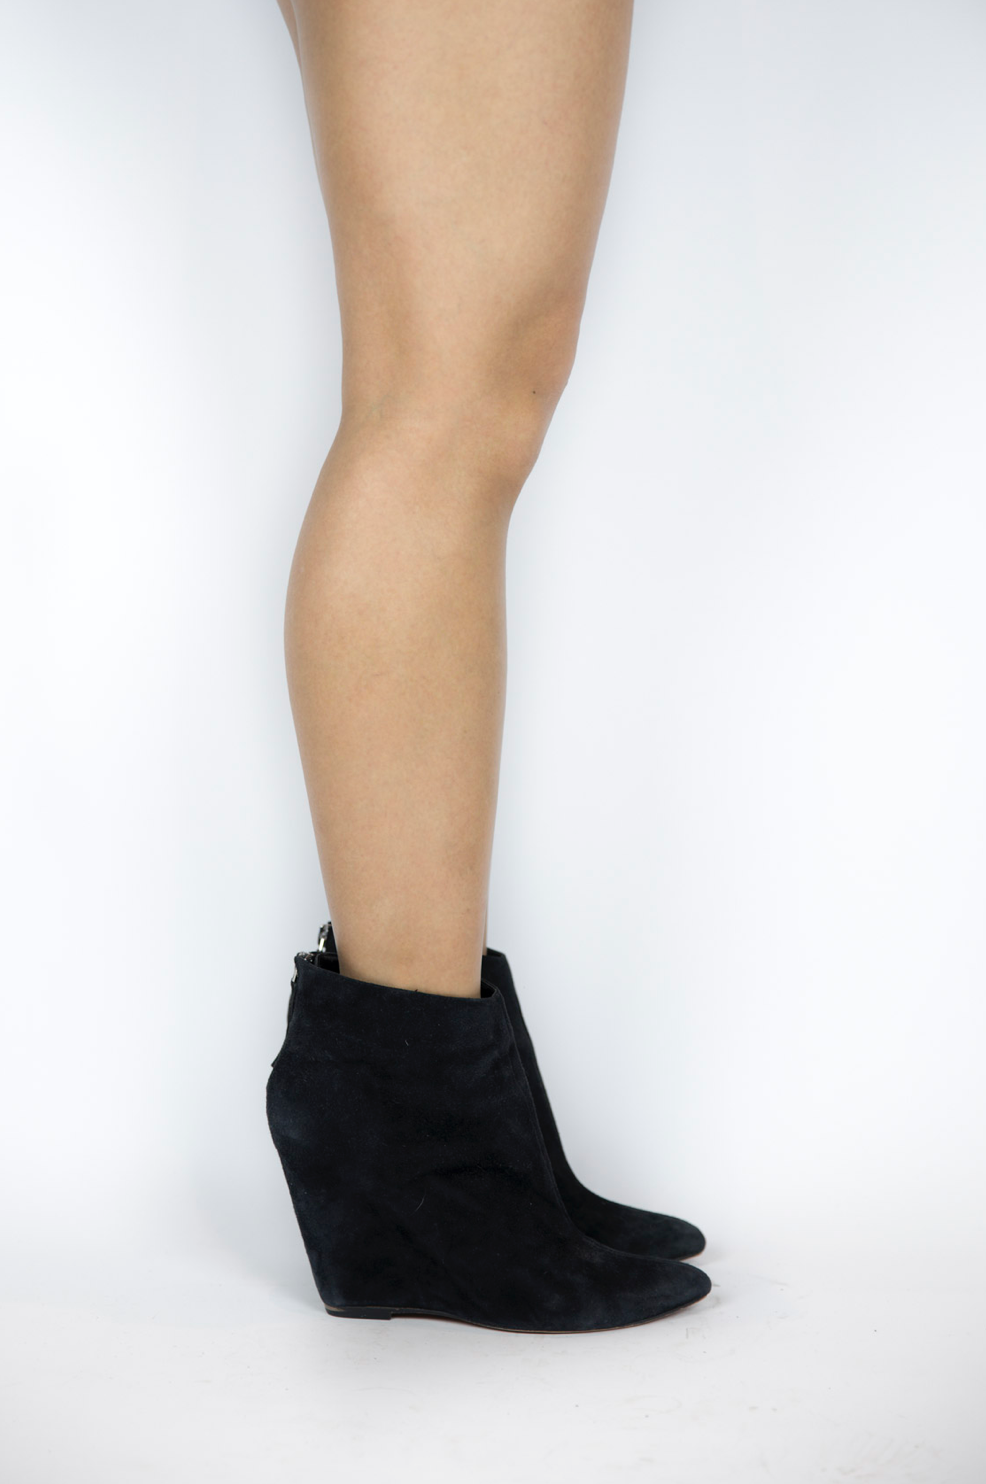 Dolce Vita - Black Suede Wedge Booties - Size 38 1/2